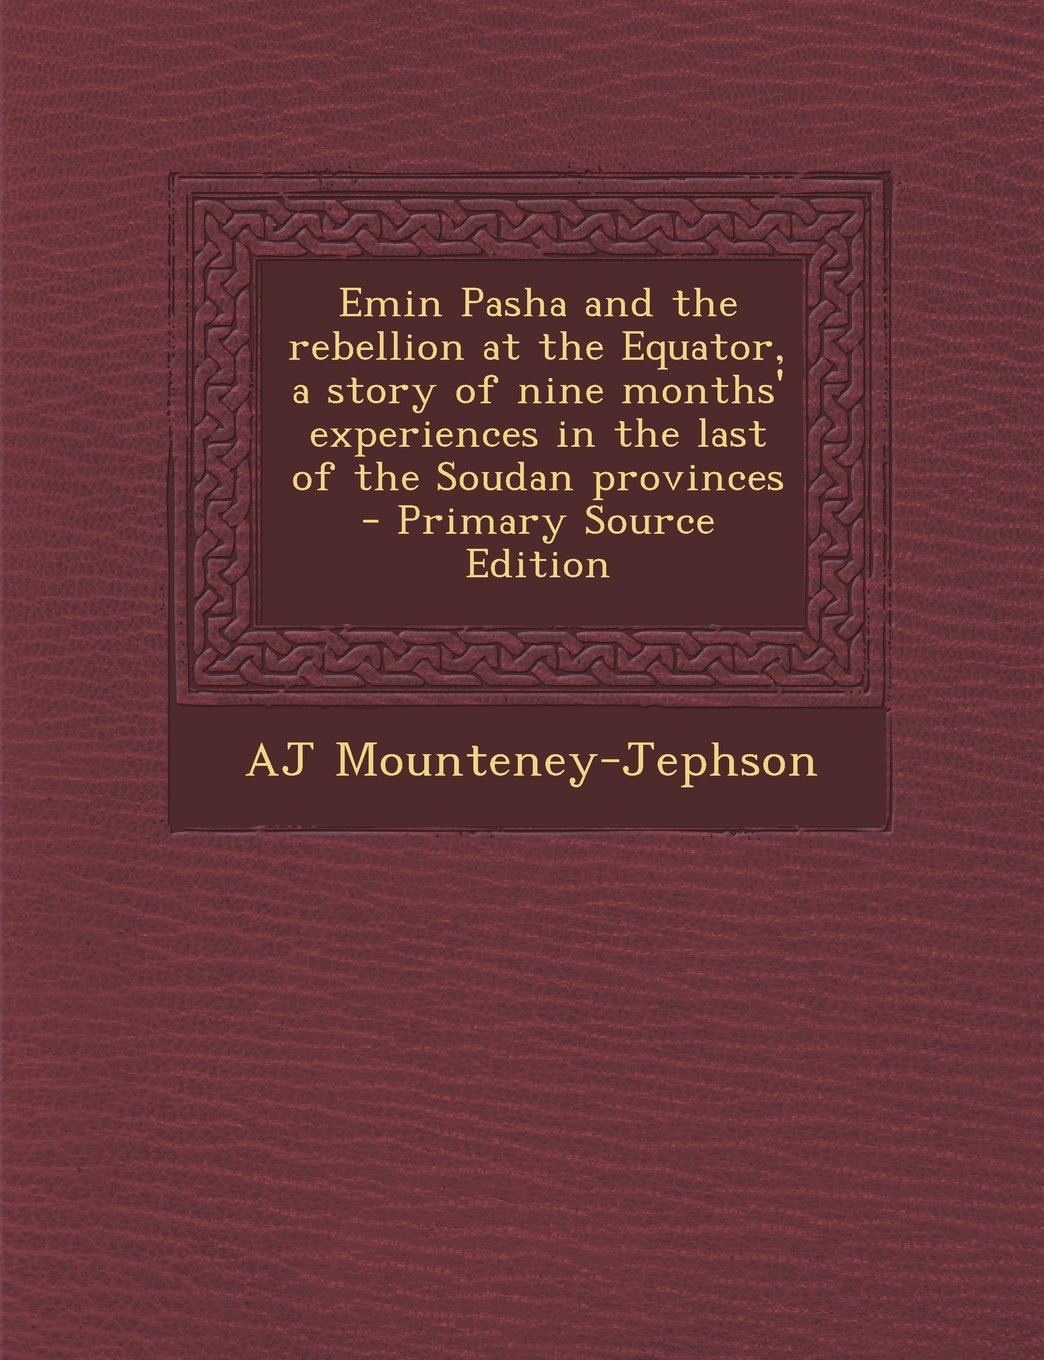 Read Online Emin Pasha and the Rebellion at the Equator, a Story of Nine Months' Experiences in the Last of the Soudan Provinces - Primary Source Edition pdf